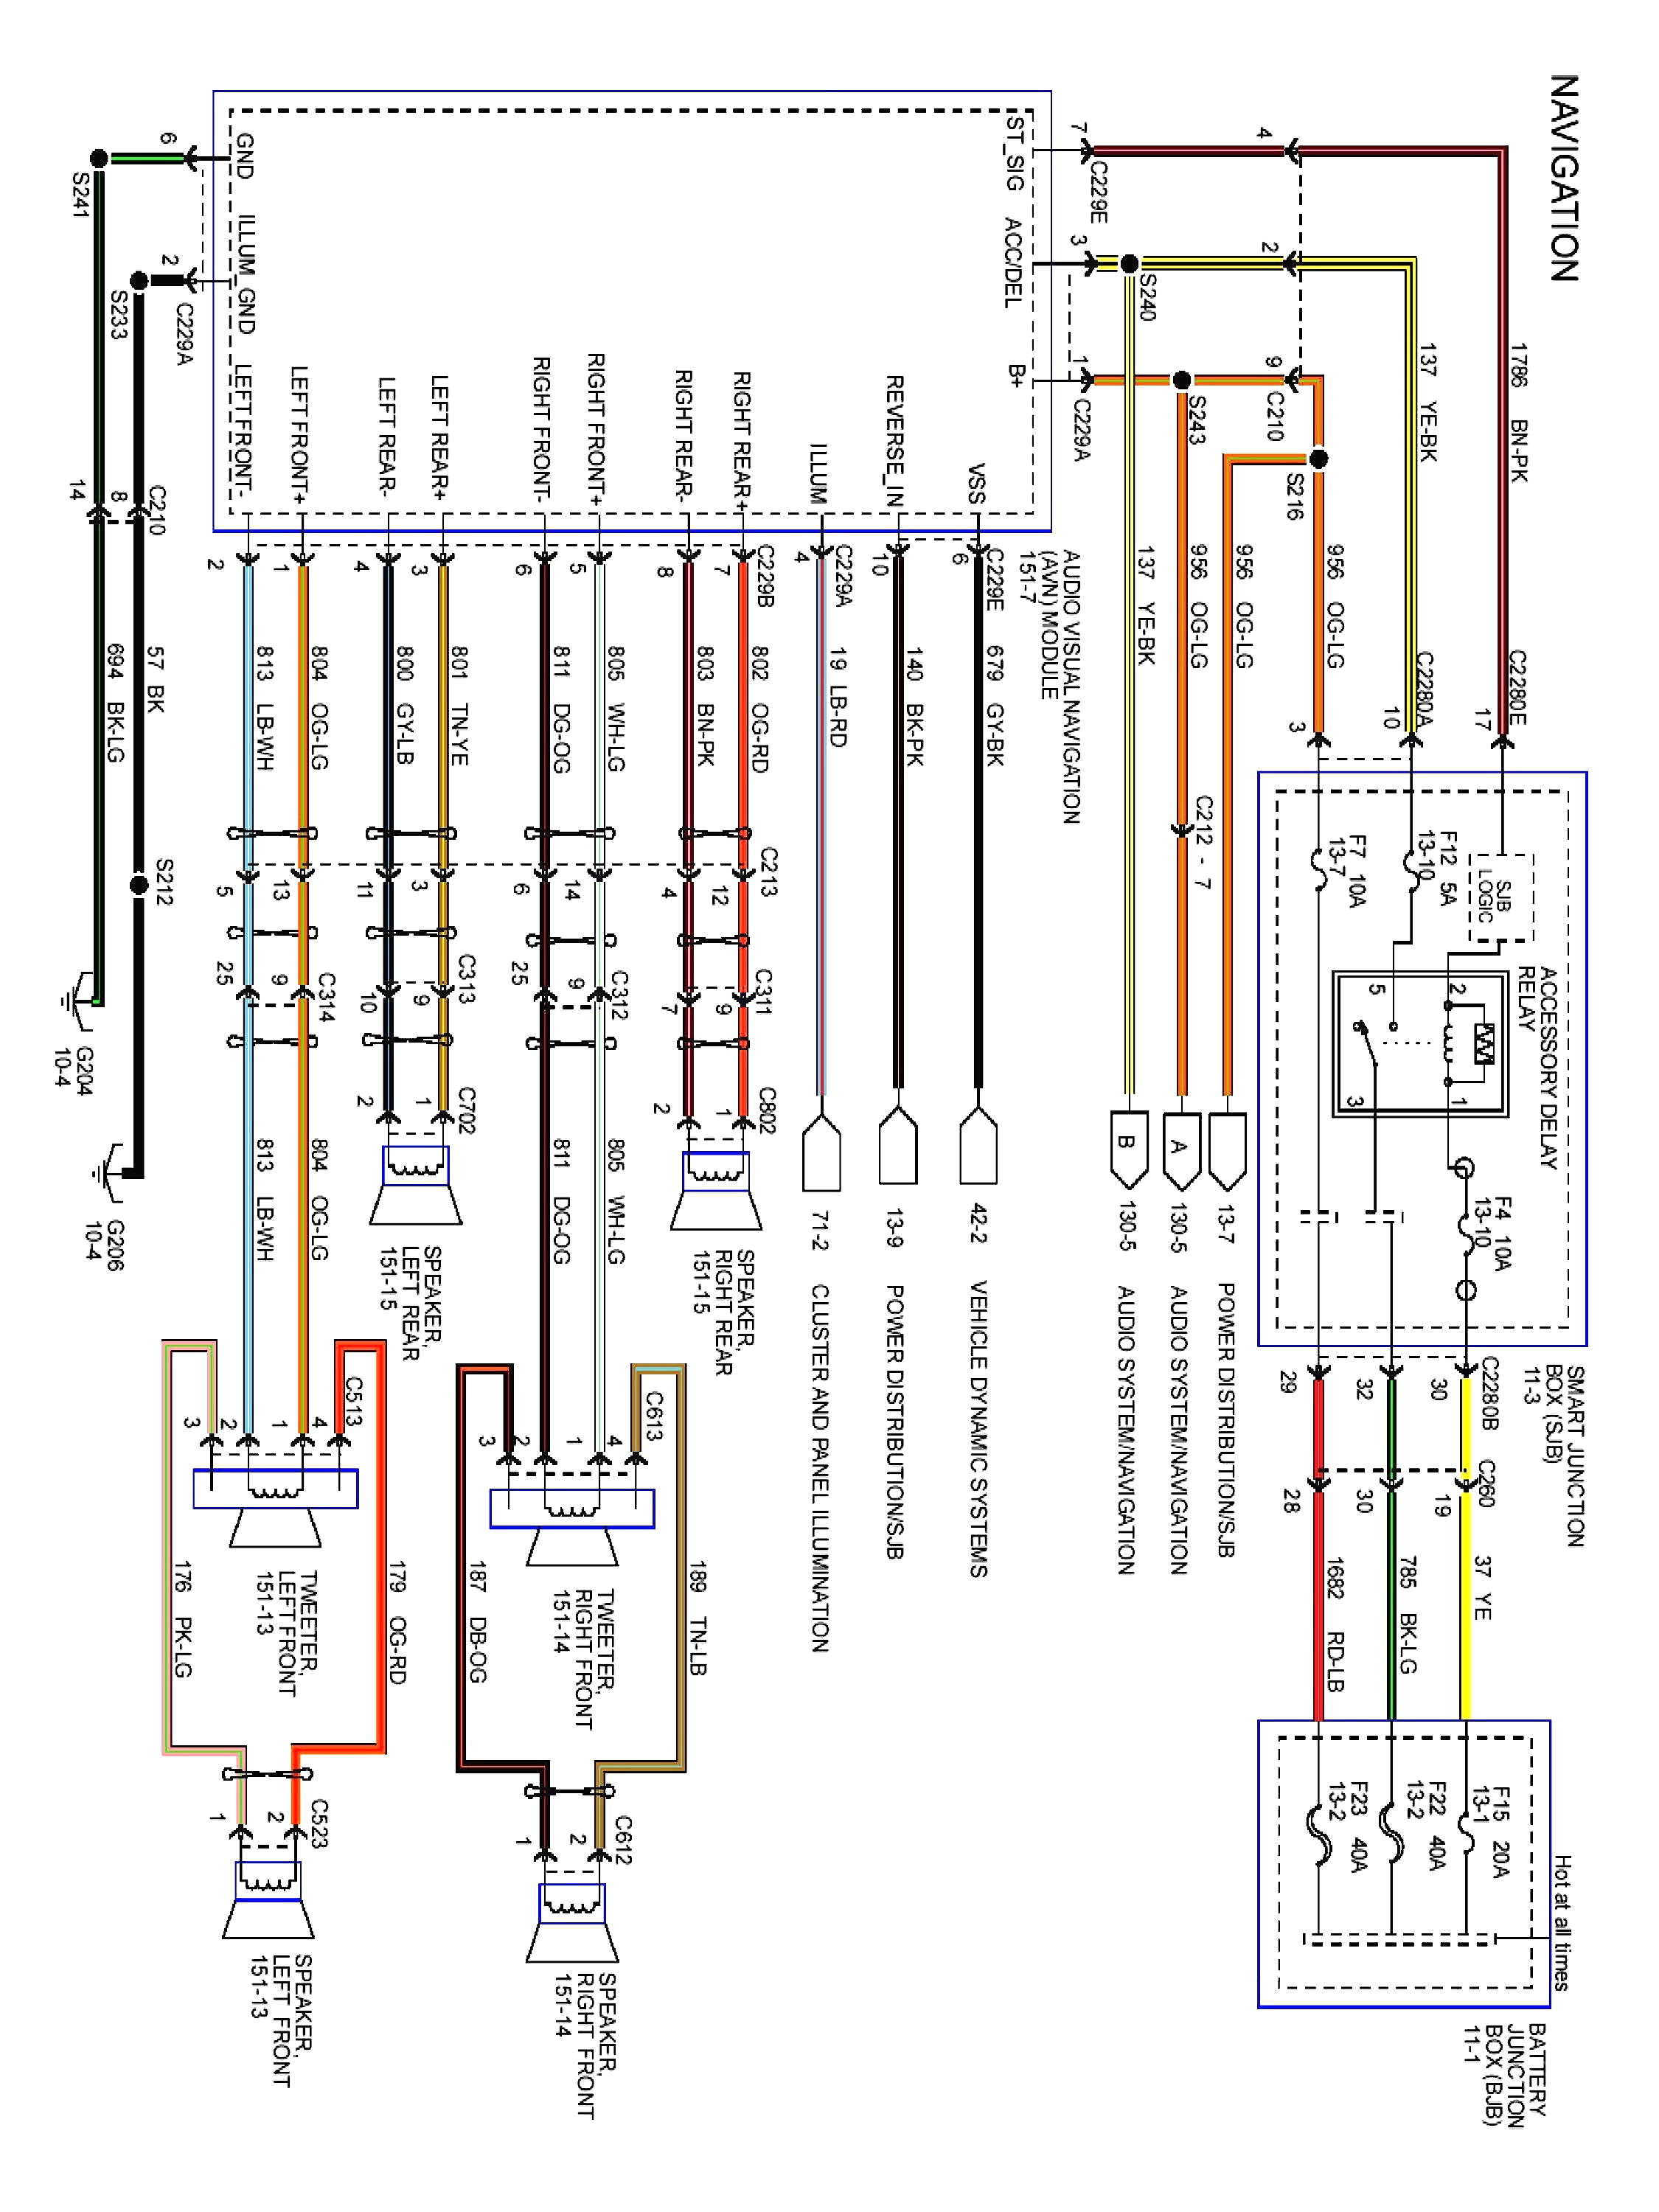 ford f 250 stereo wiring harness diagram wiring diagram technic 2011 ford ranger stereo wiring diagram 2011 f250 stereo wiring diagram